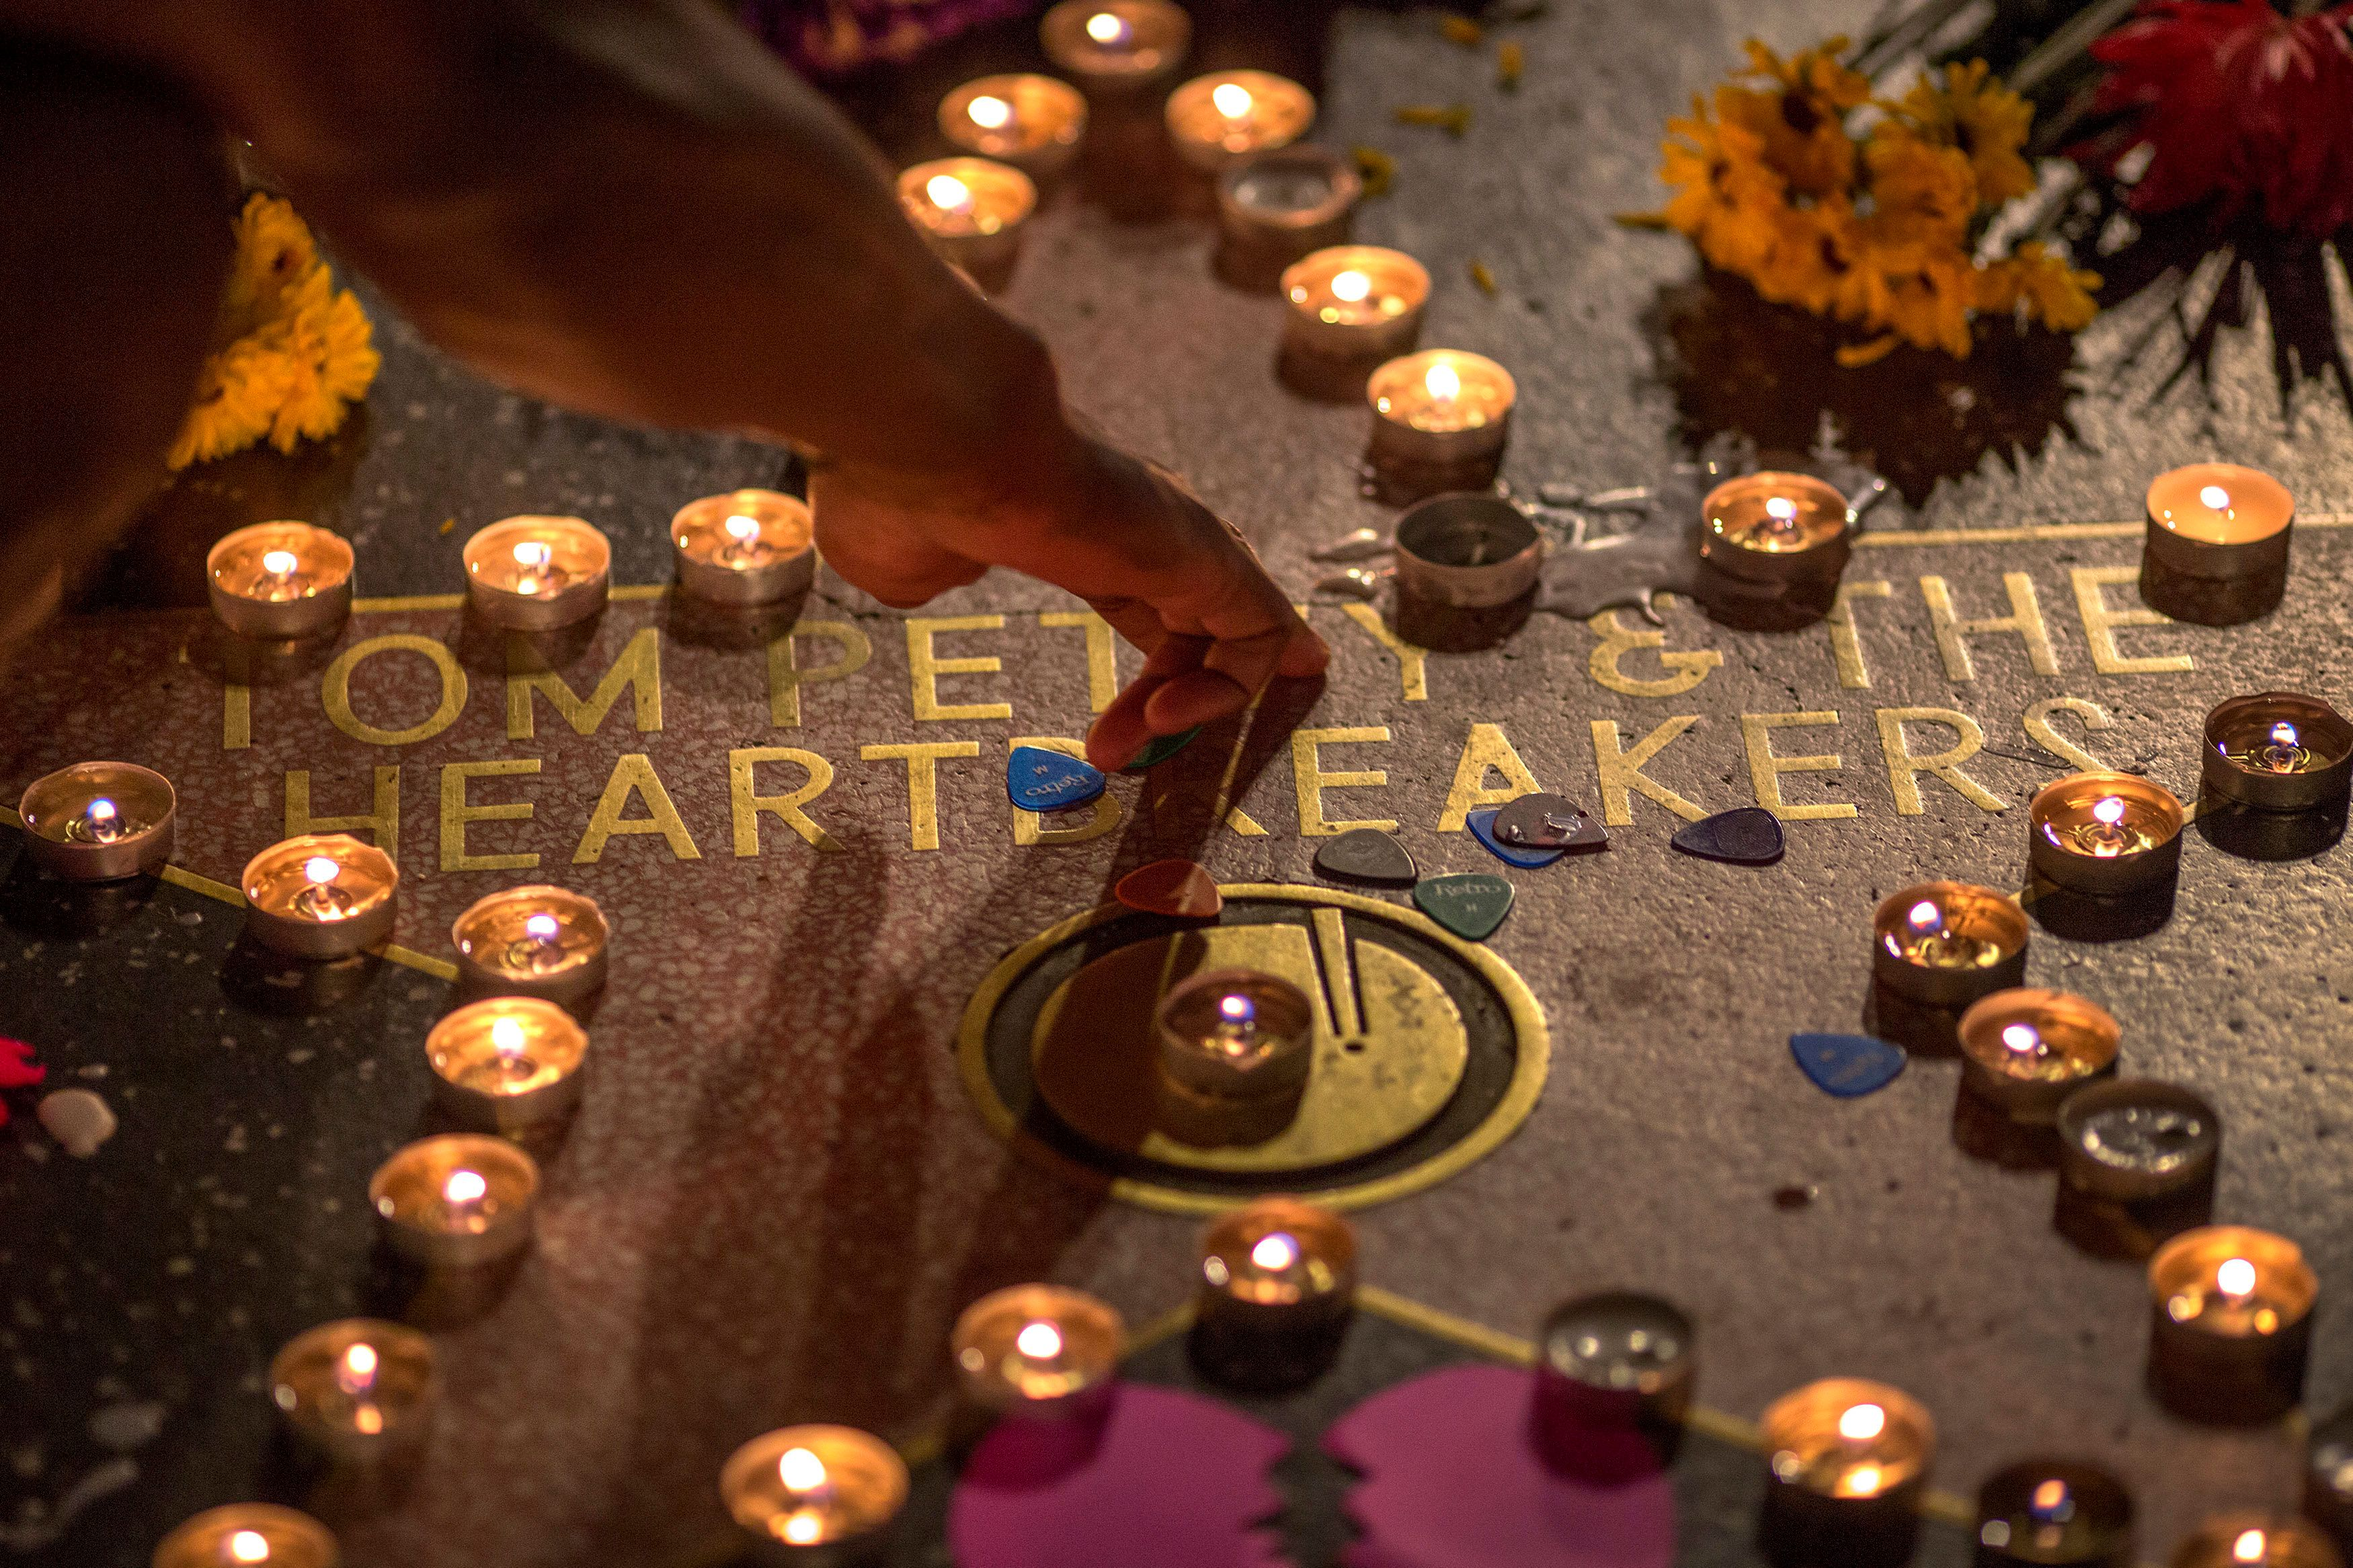 Fans have paid tribute to the music legend, including at his star on the Hollywood Walk of